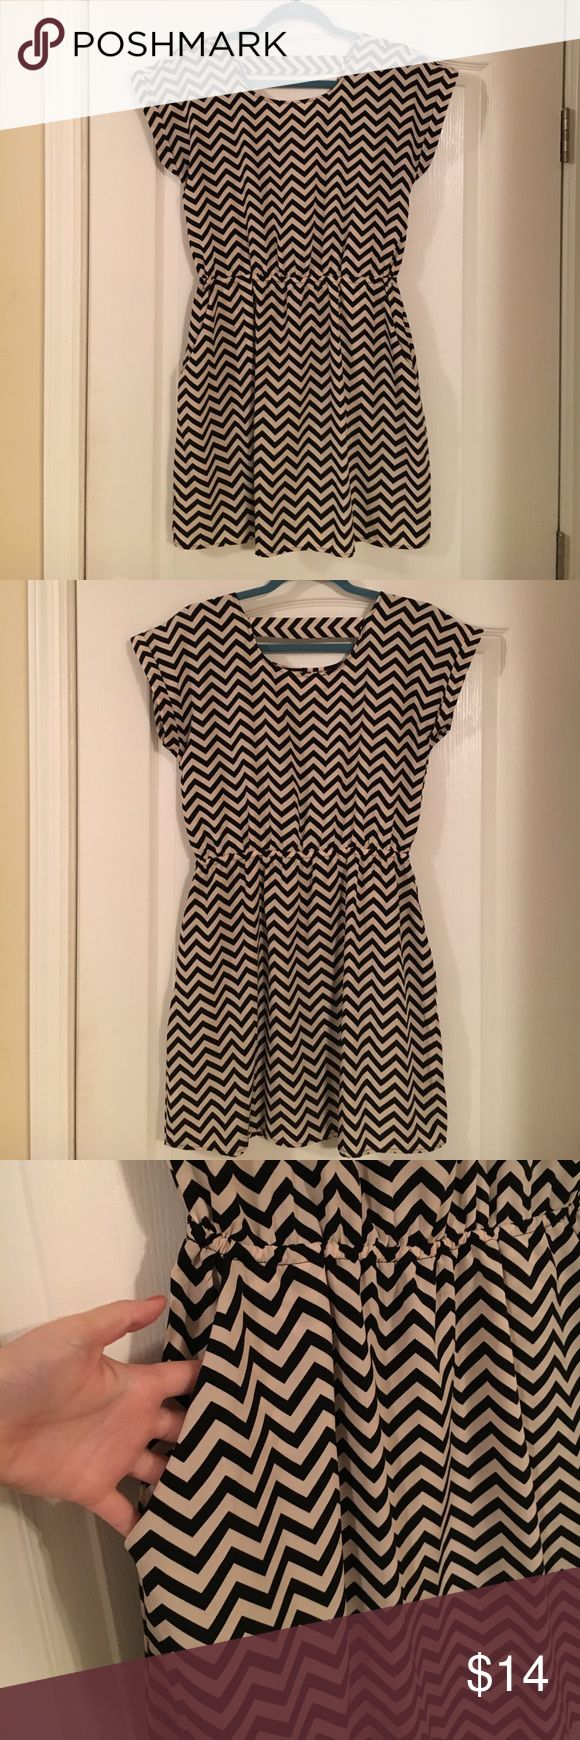 Black & white chevron dress with pockets Black and white chevron dress from Target. It has pockets and is made of a silky, flattering material. Worn once and in excellent condition. Dress it up or dress it down. This cute mini is versatile and great for any occasion! Dresses Mini